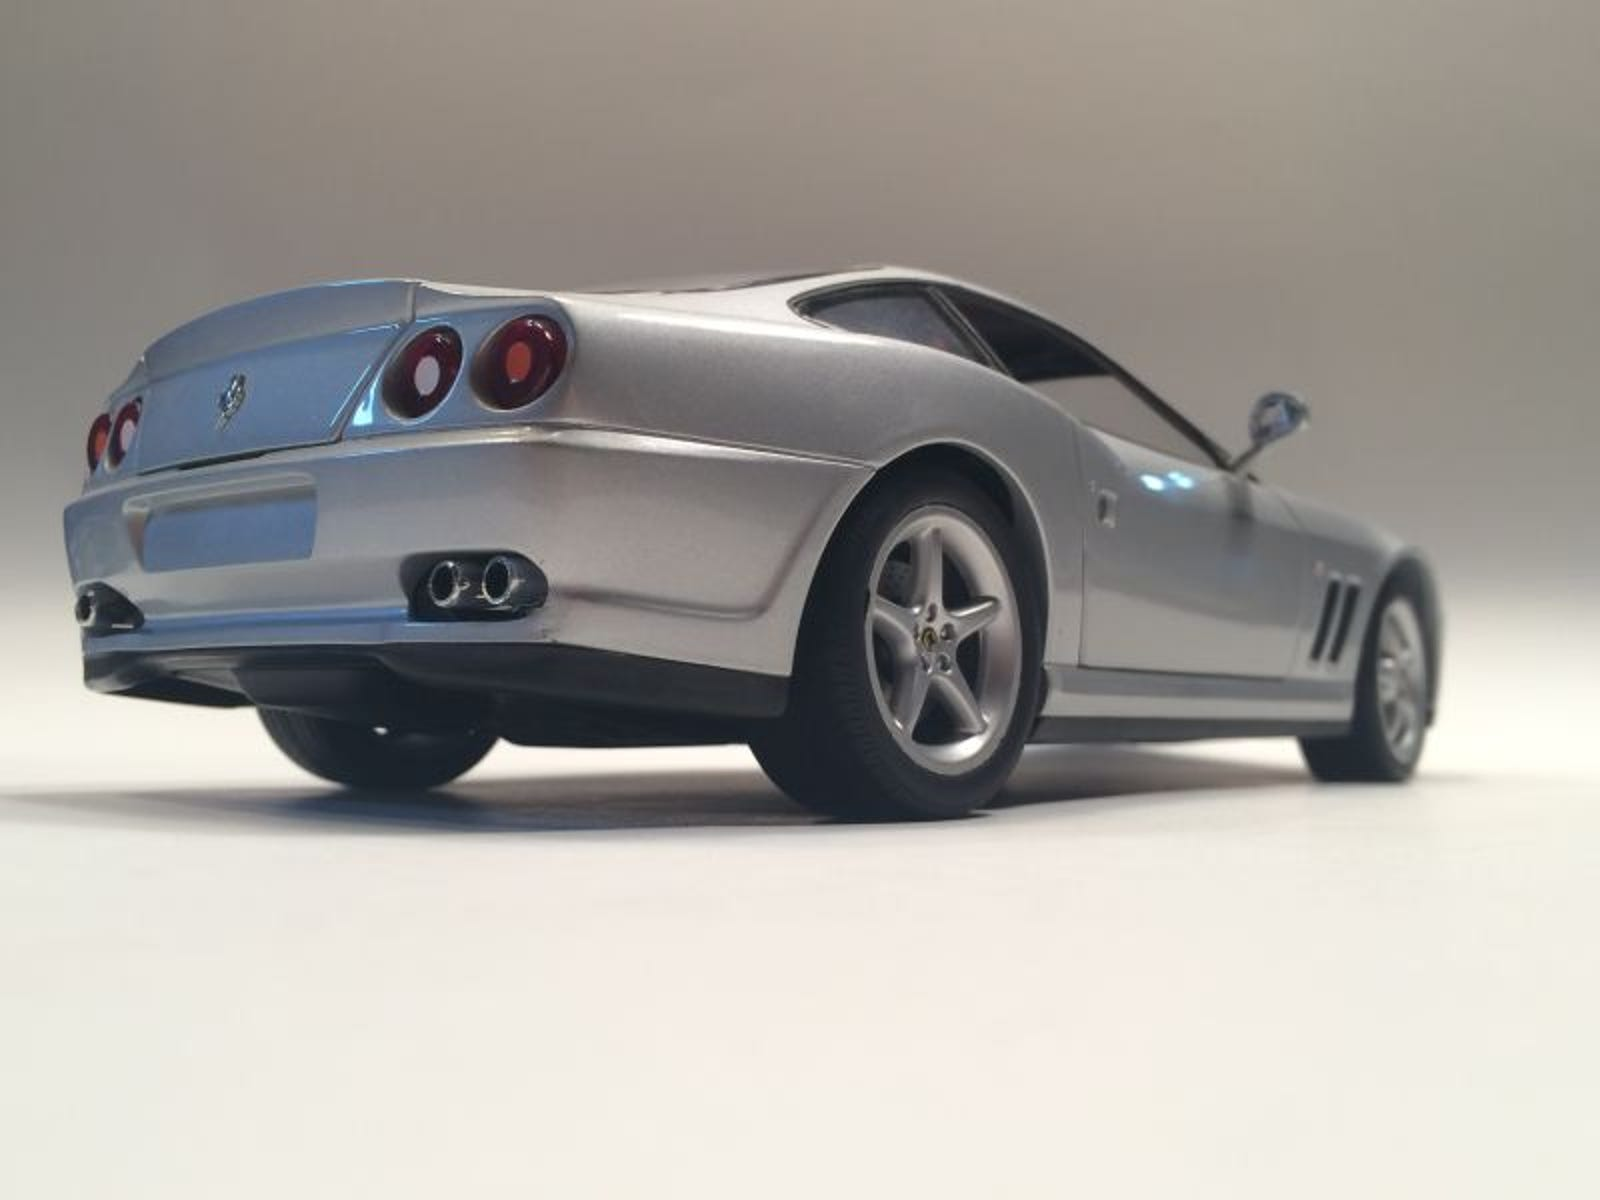 Lot 28: Repaired 1:18 scale UT Ferrari 550 $5 - Maisto front wheels, you pay shipping. More details below.